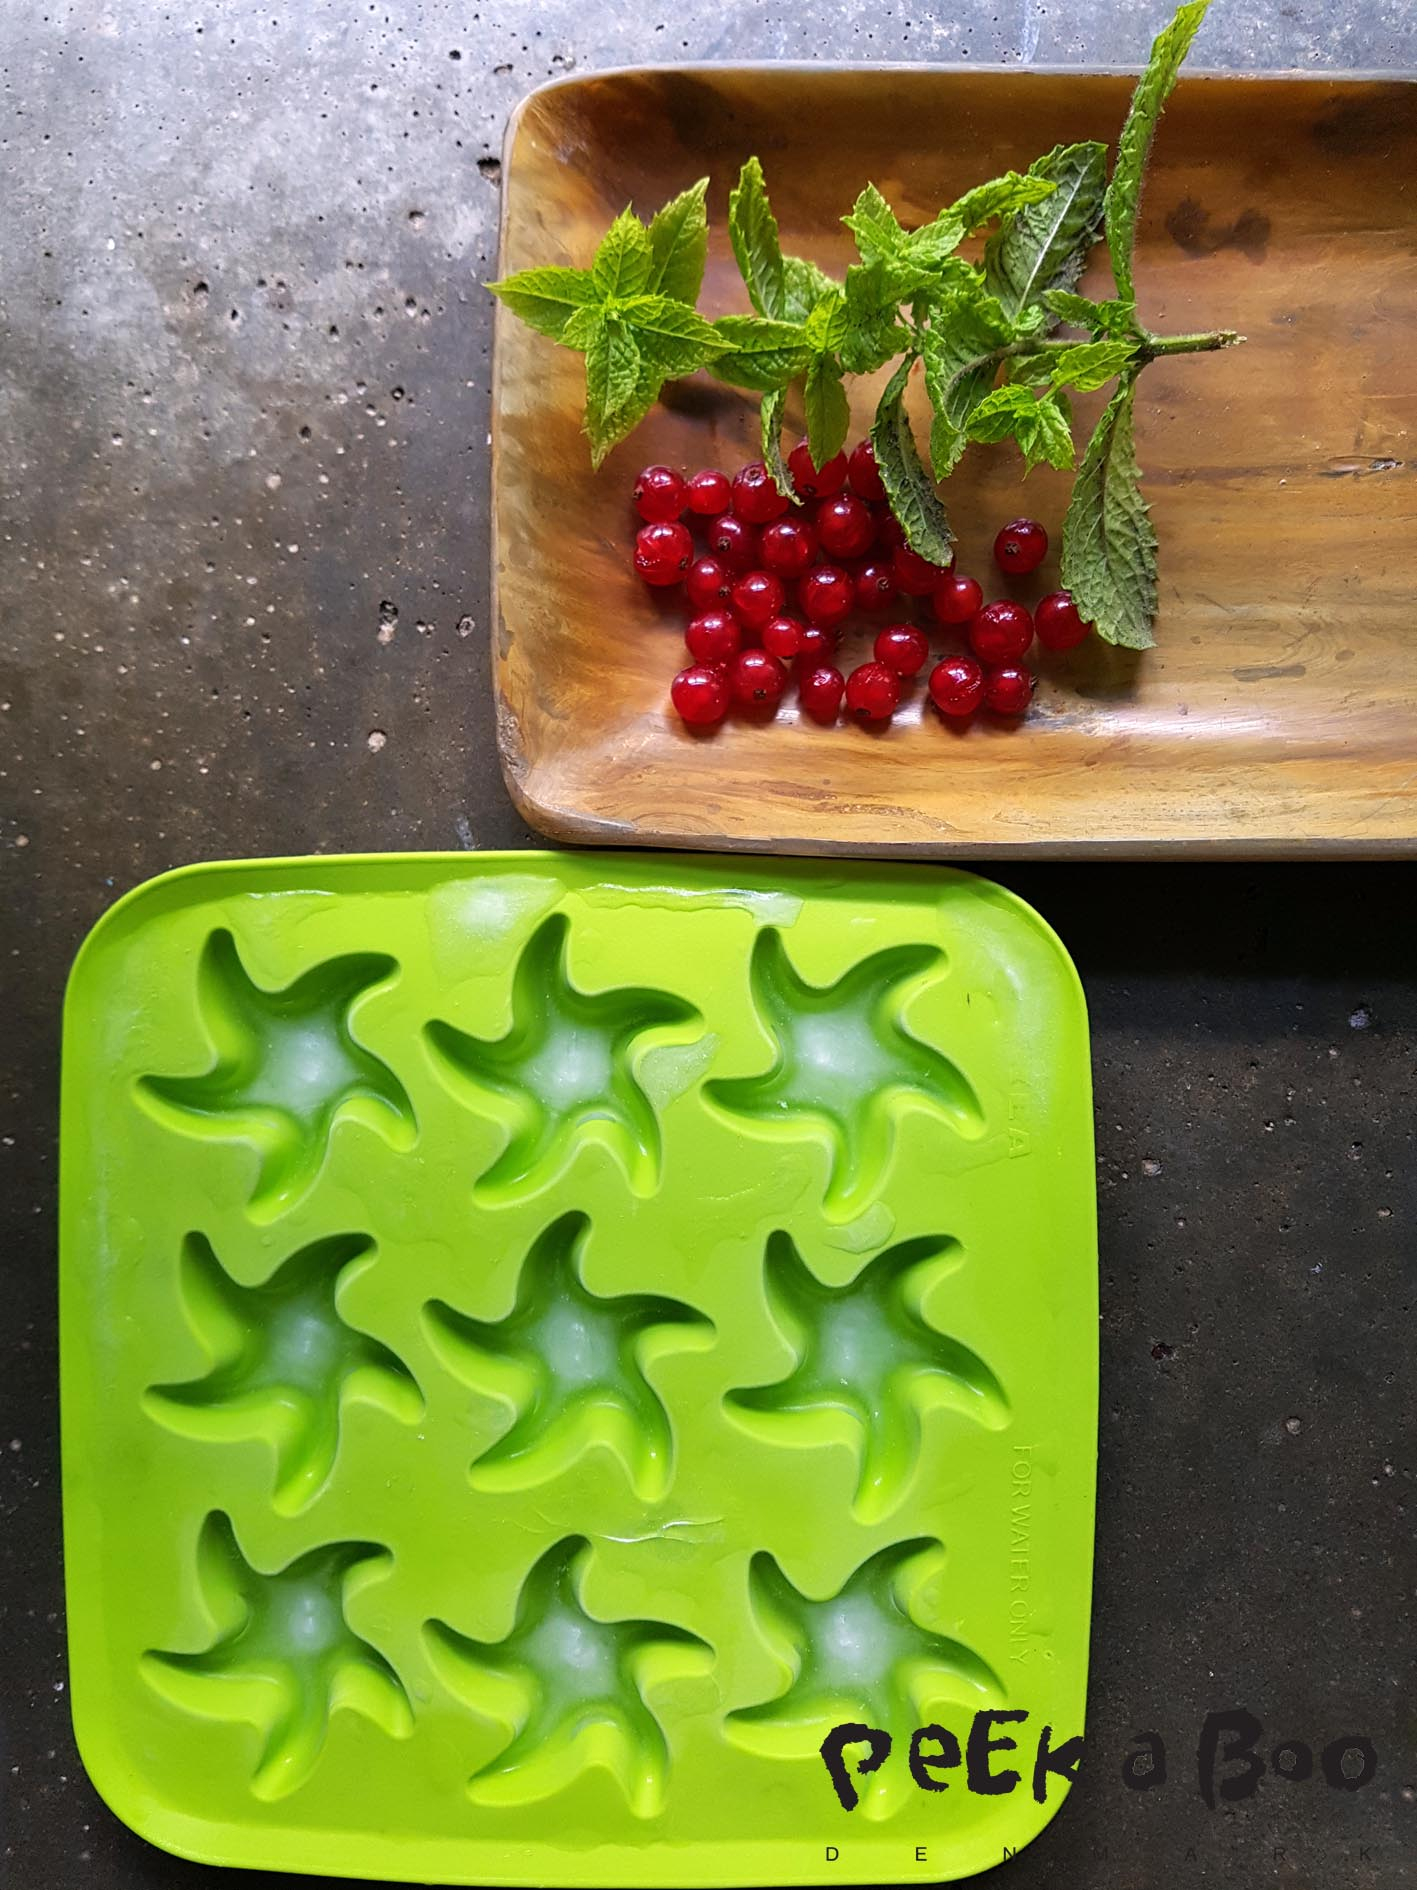 Freeze the botom of the icecubes. Use small berries and mint leaves.